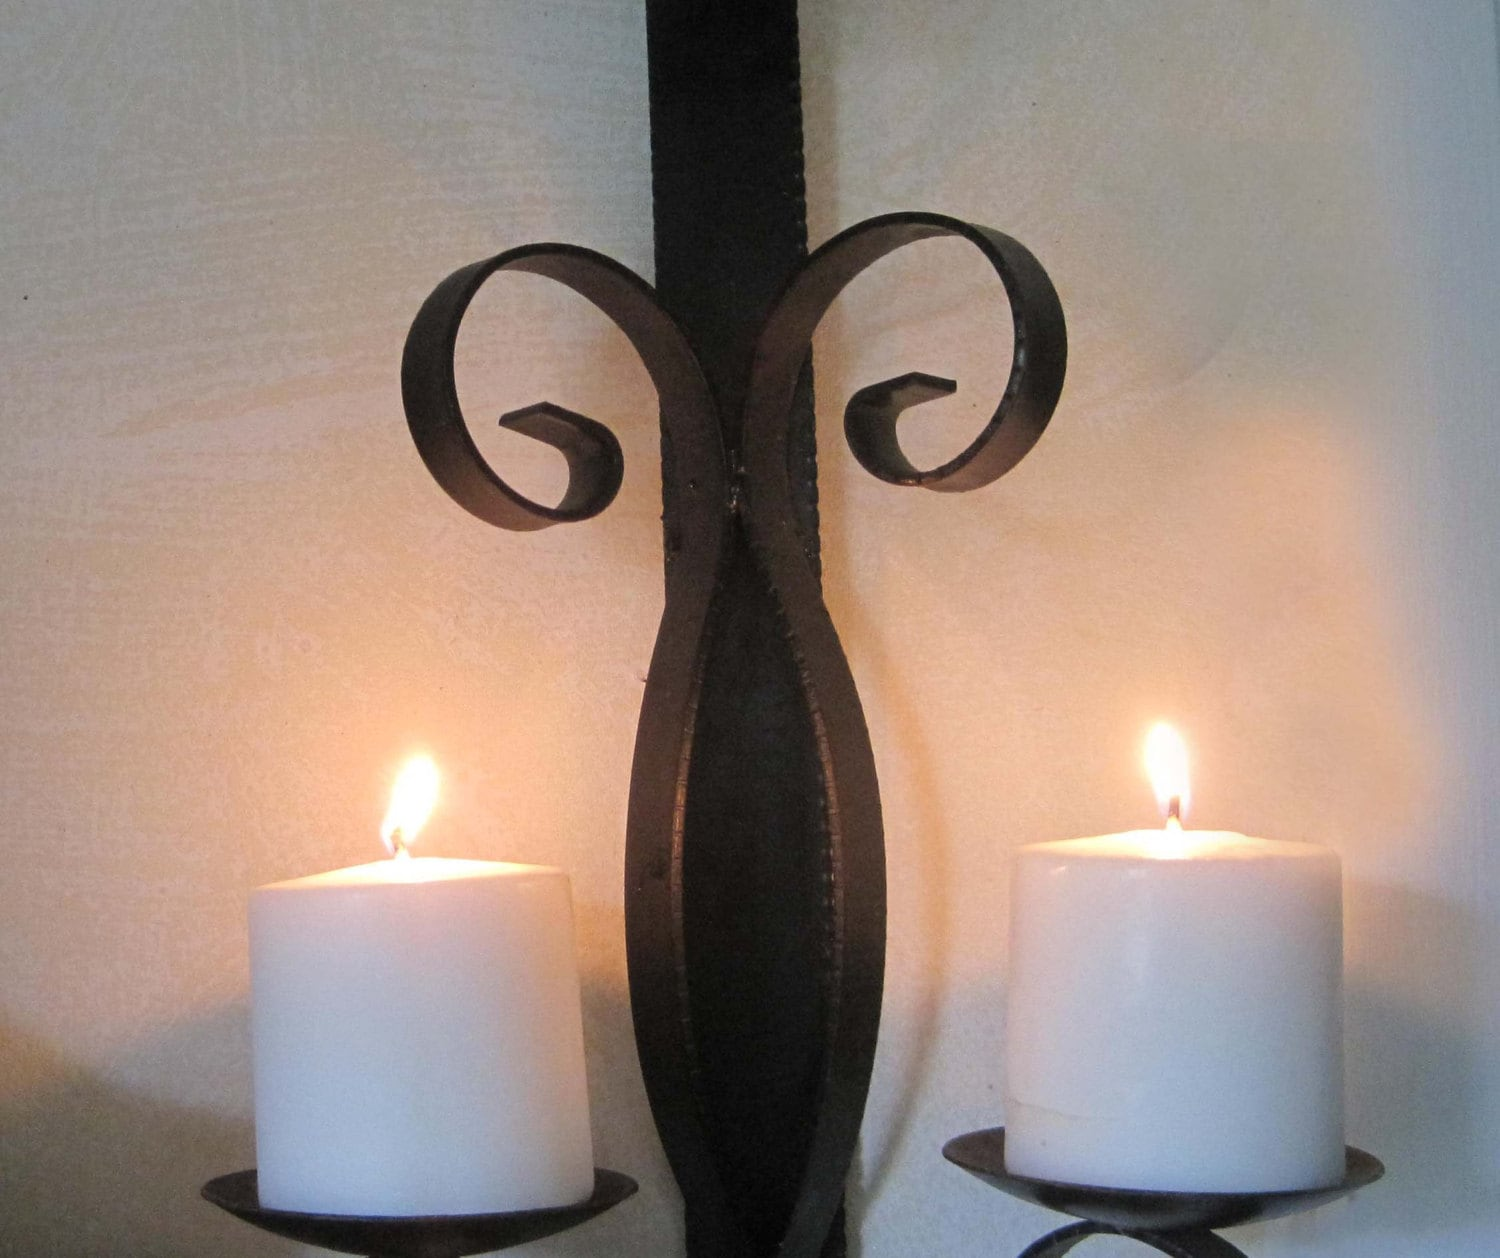 Wrought Iron Candle Holder Wall Sconce Black Medieval on Black Wrought Iron Wall Candle Holders id=62622